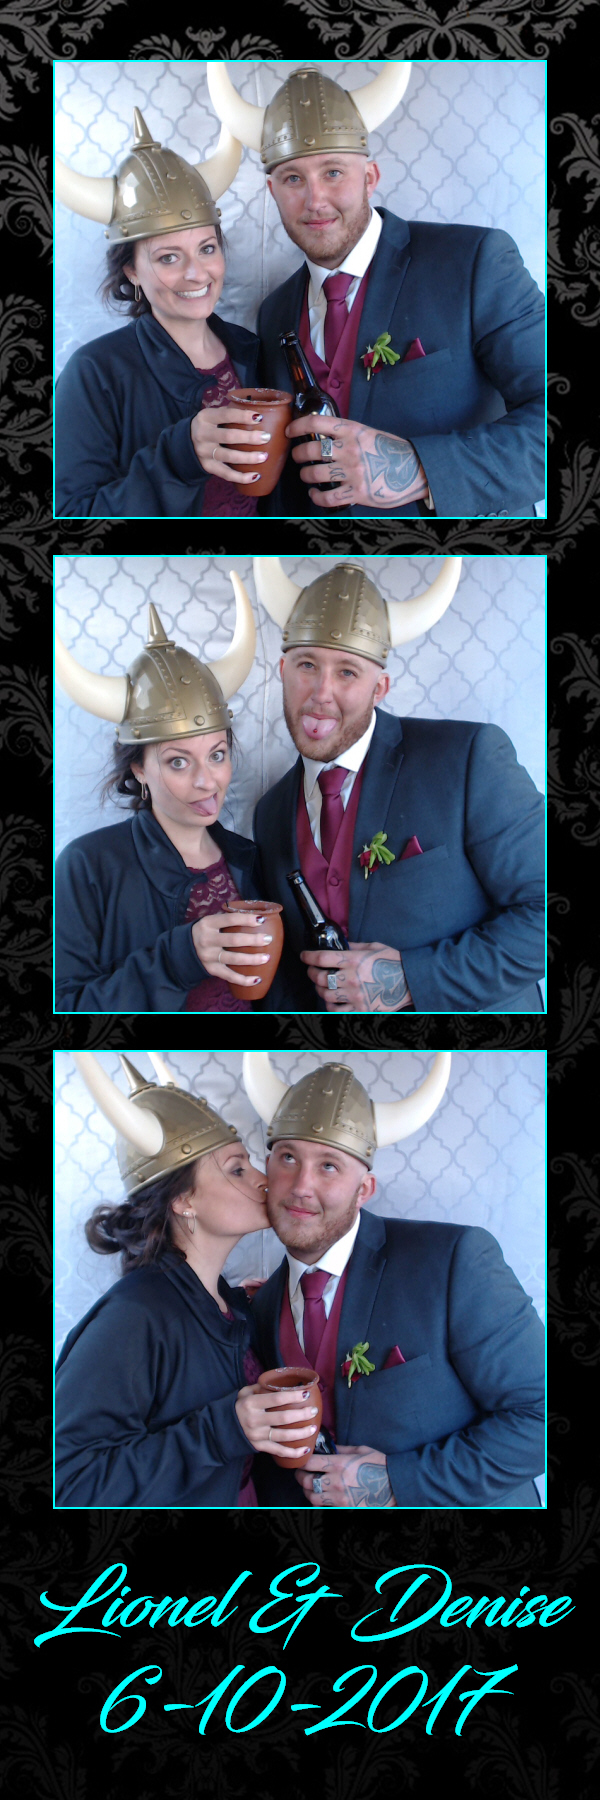 Art of the Party DJs photo booth los angeles lionel denise